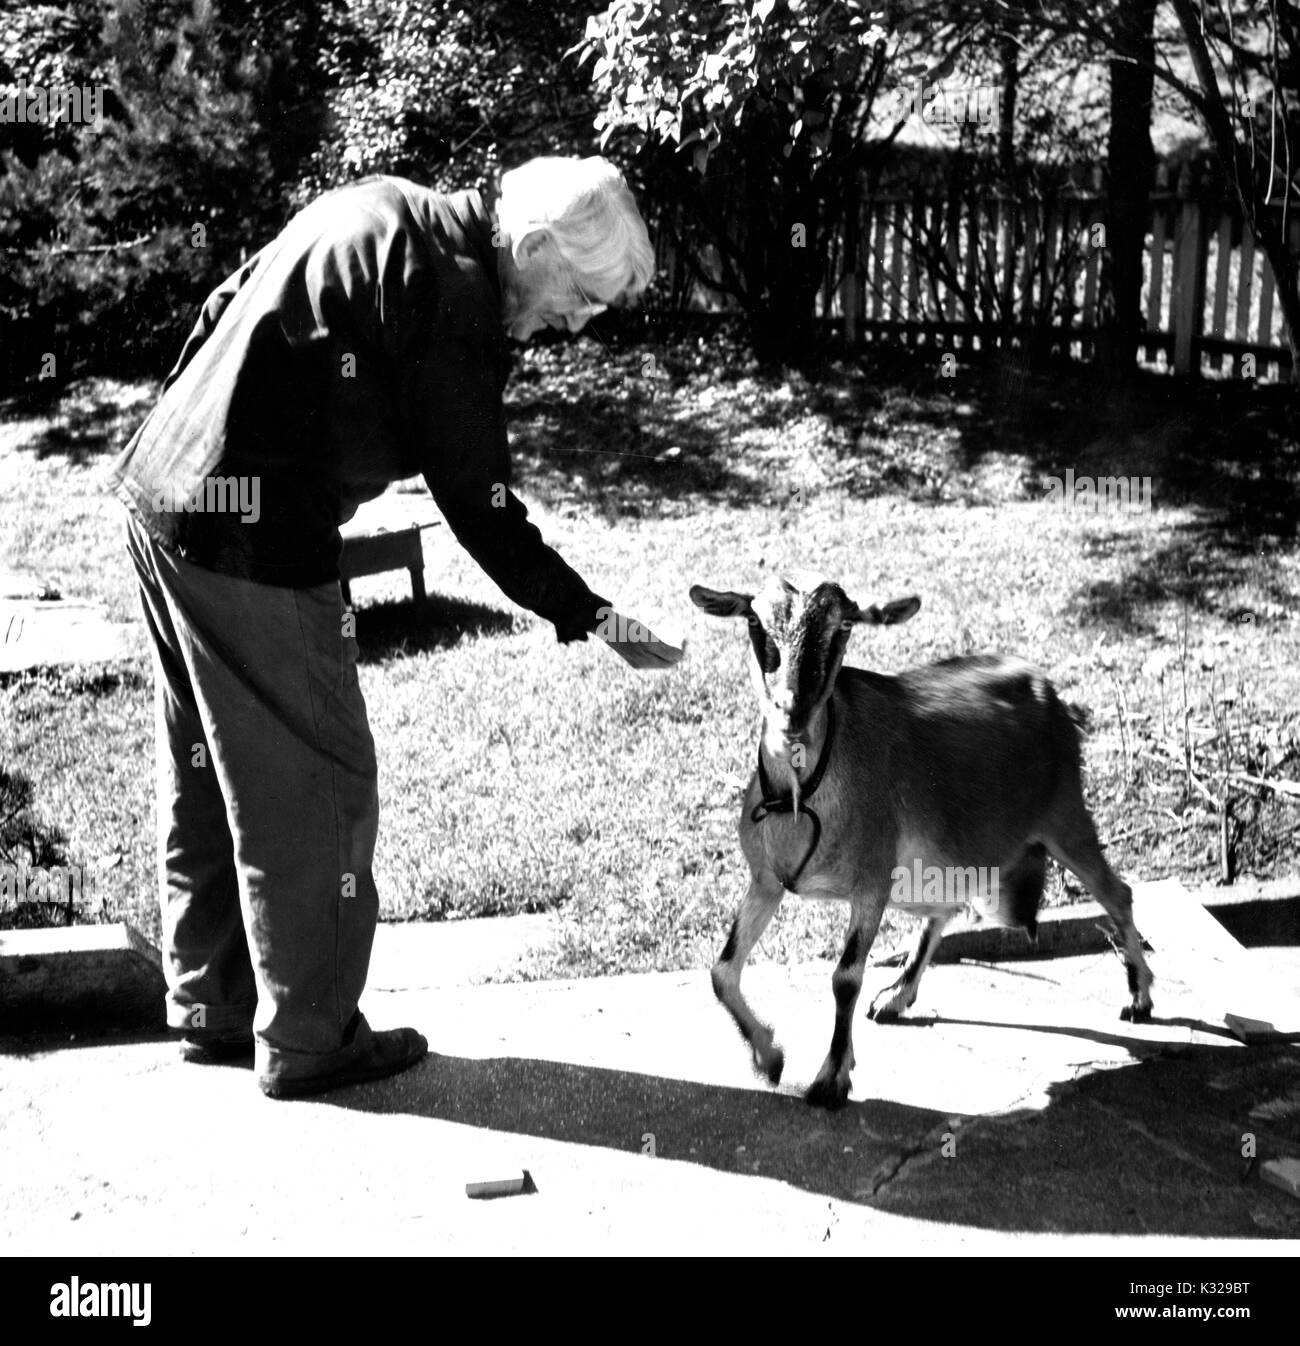 Candid portrait of American philosopher, psychologist, and educational reformer John Dewey standing outside on a path feeding a goat, 1946. - Stock Image